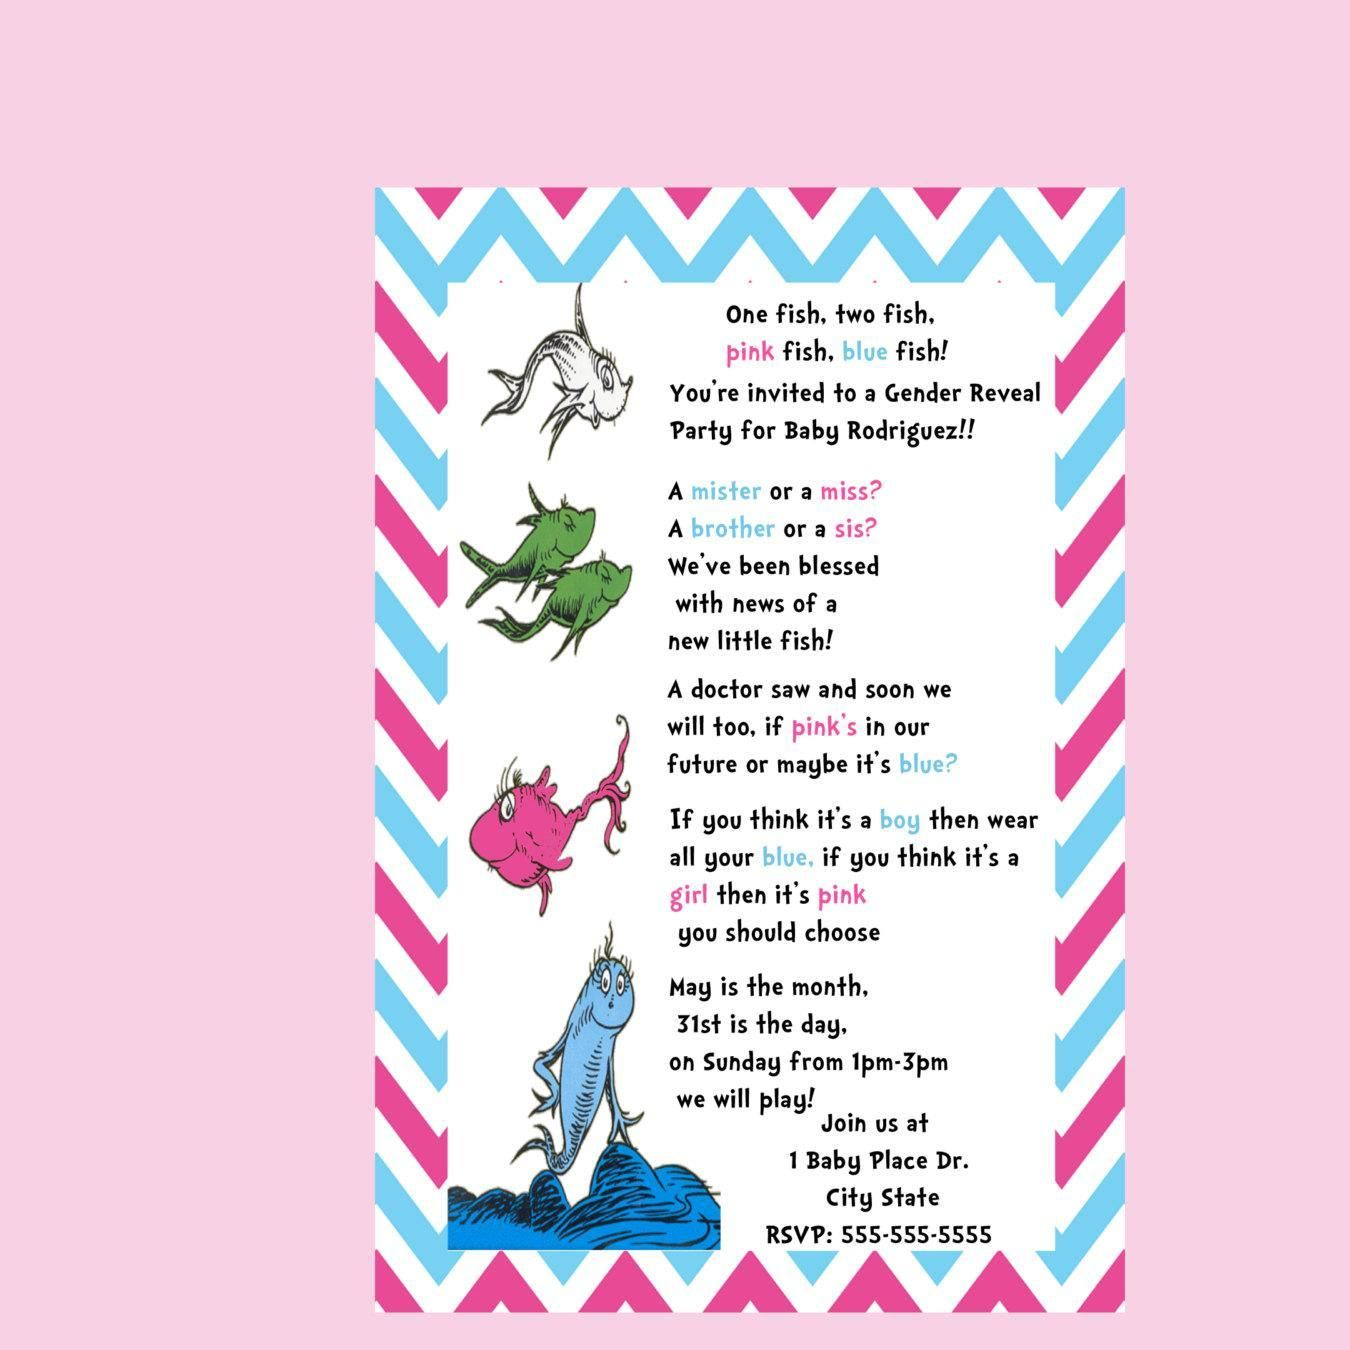 Dr seuss gender reveal invitation one fish two fish for One fish two fish printable